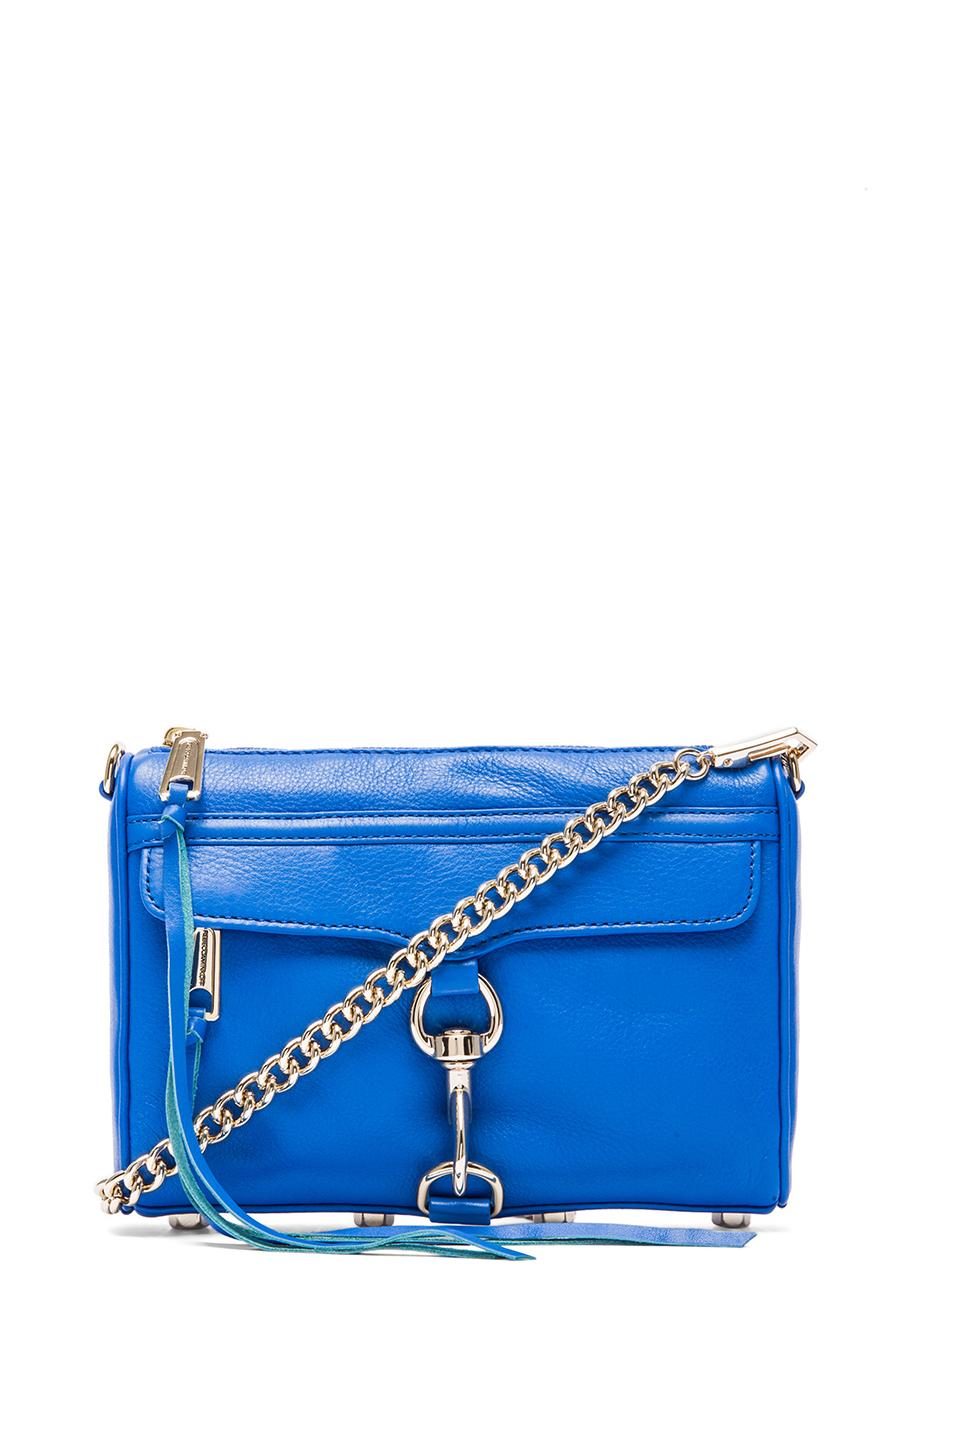 Rebecca Minkoff Mini MAC in Bright Blue